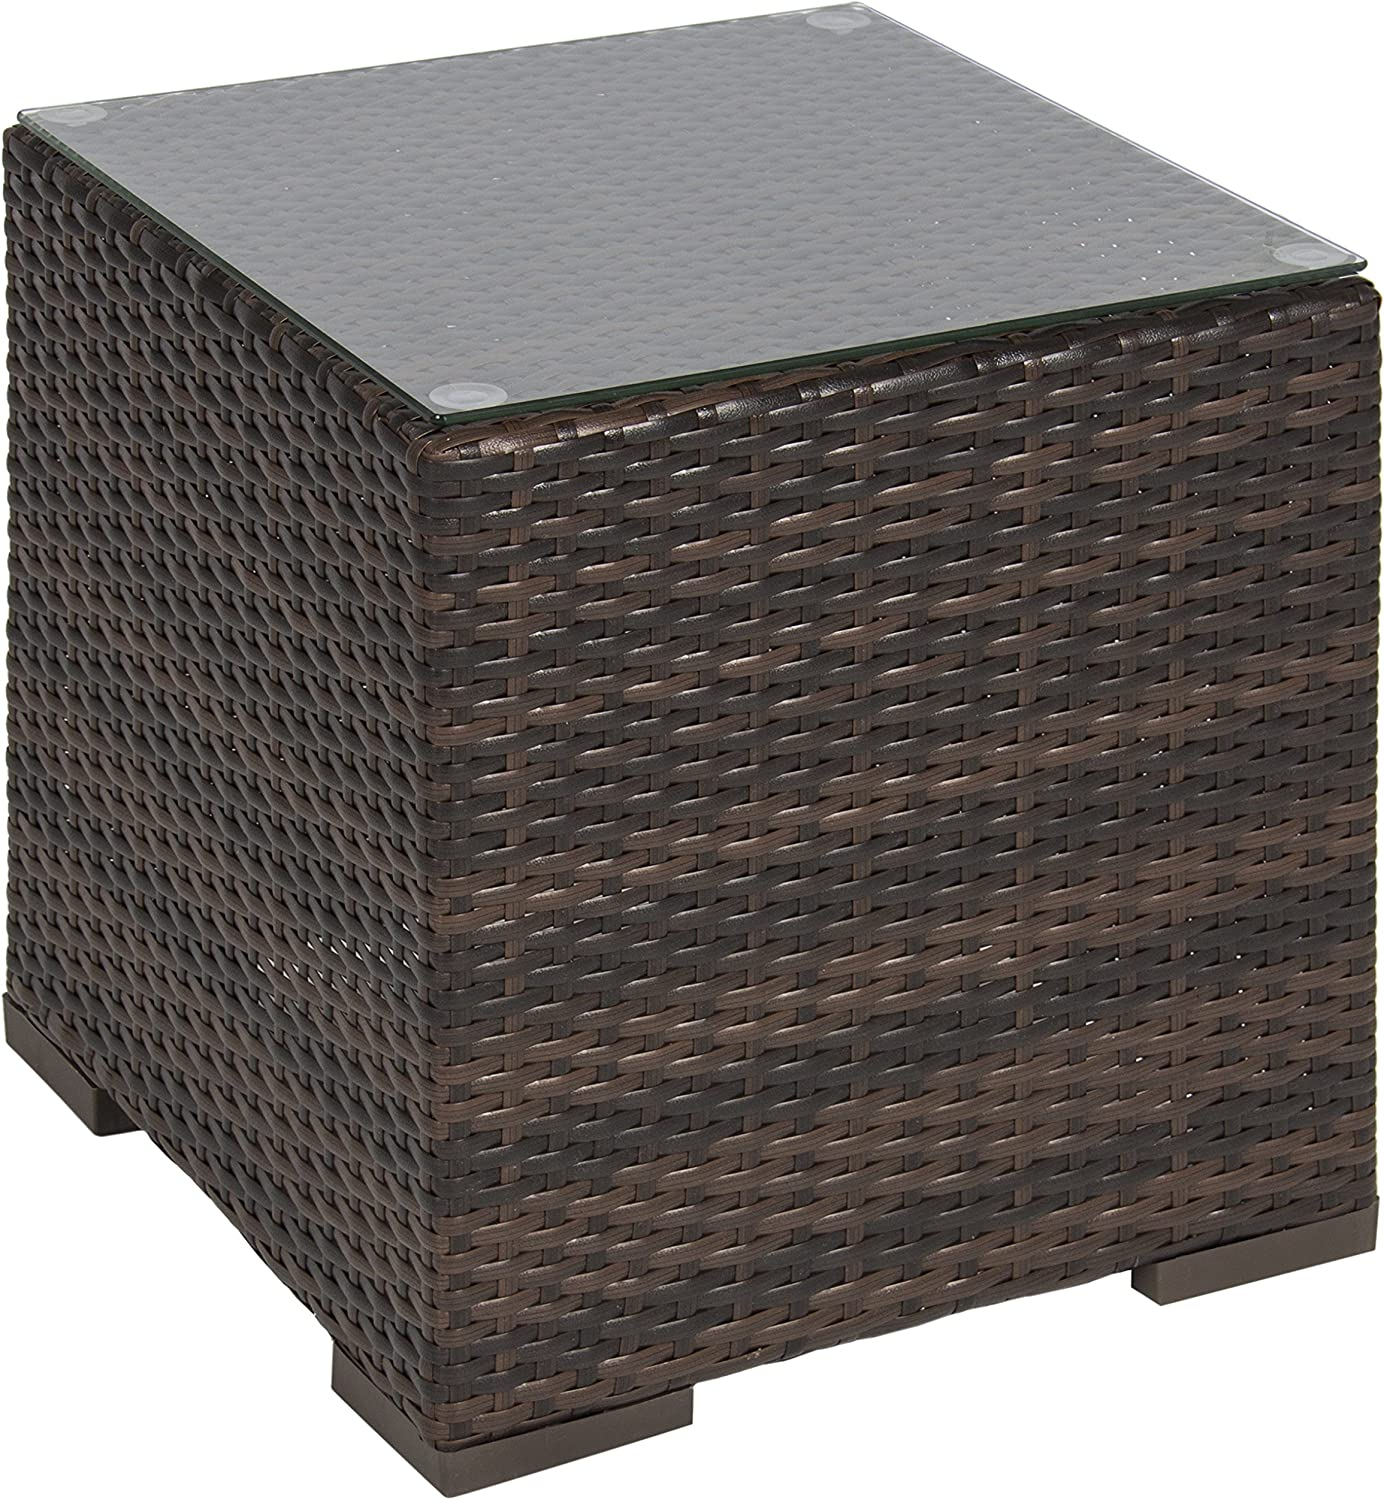 Best Choice Products Wicker Rattan Side Table Outdoor Patio